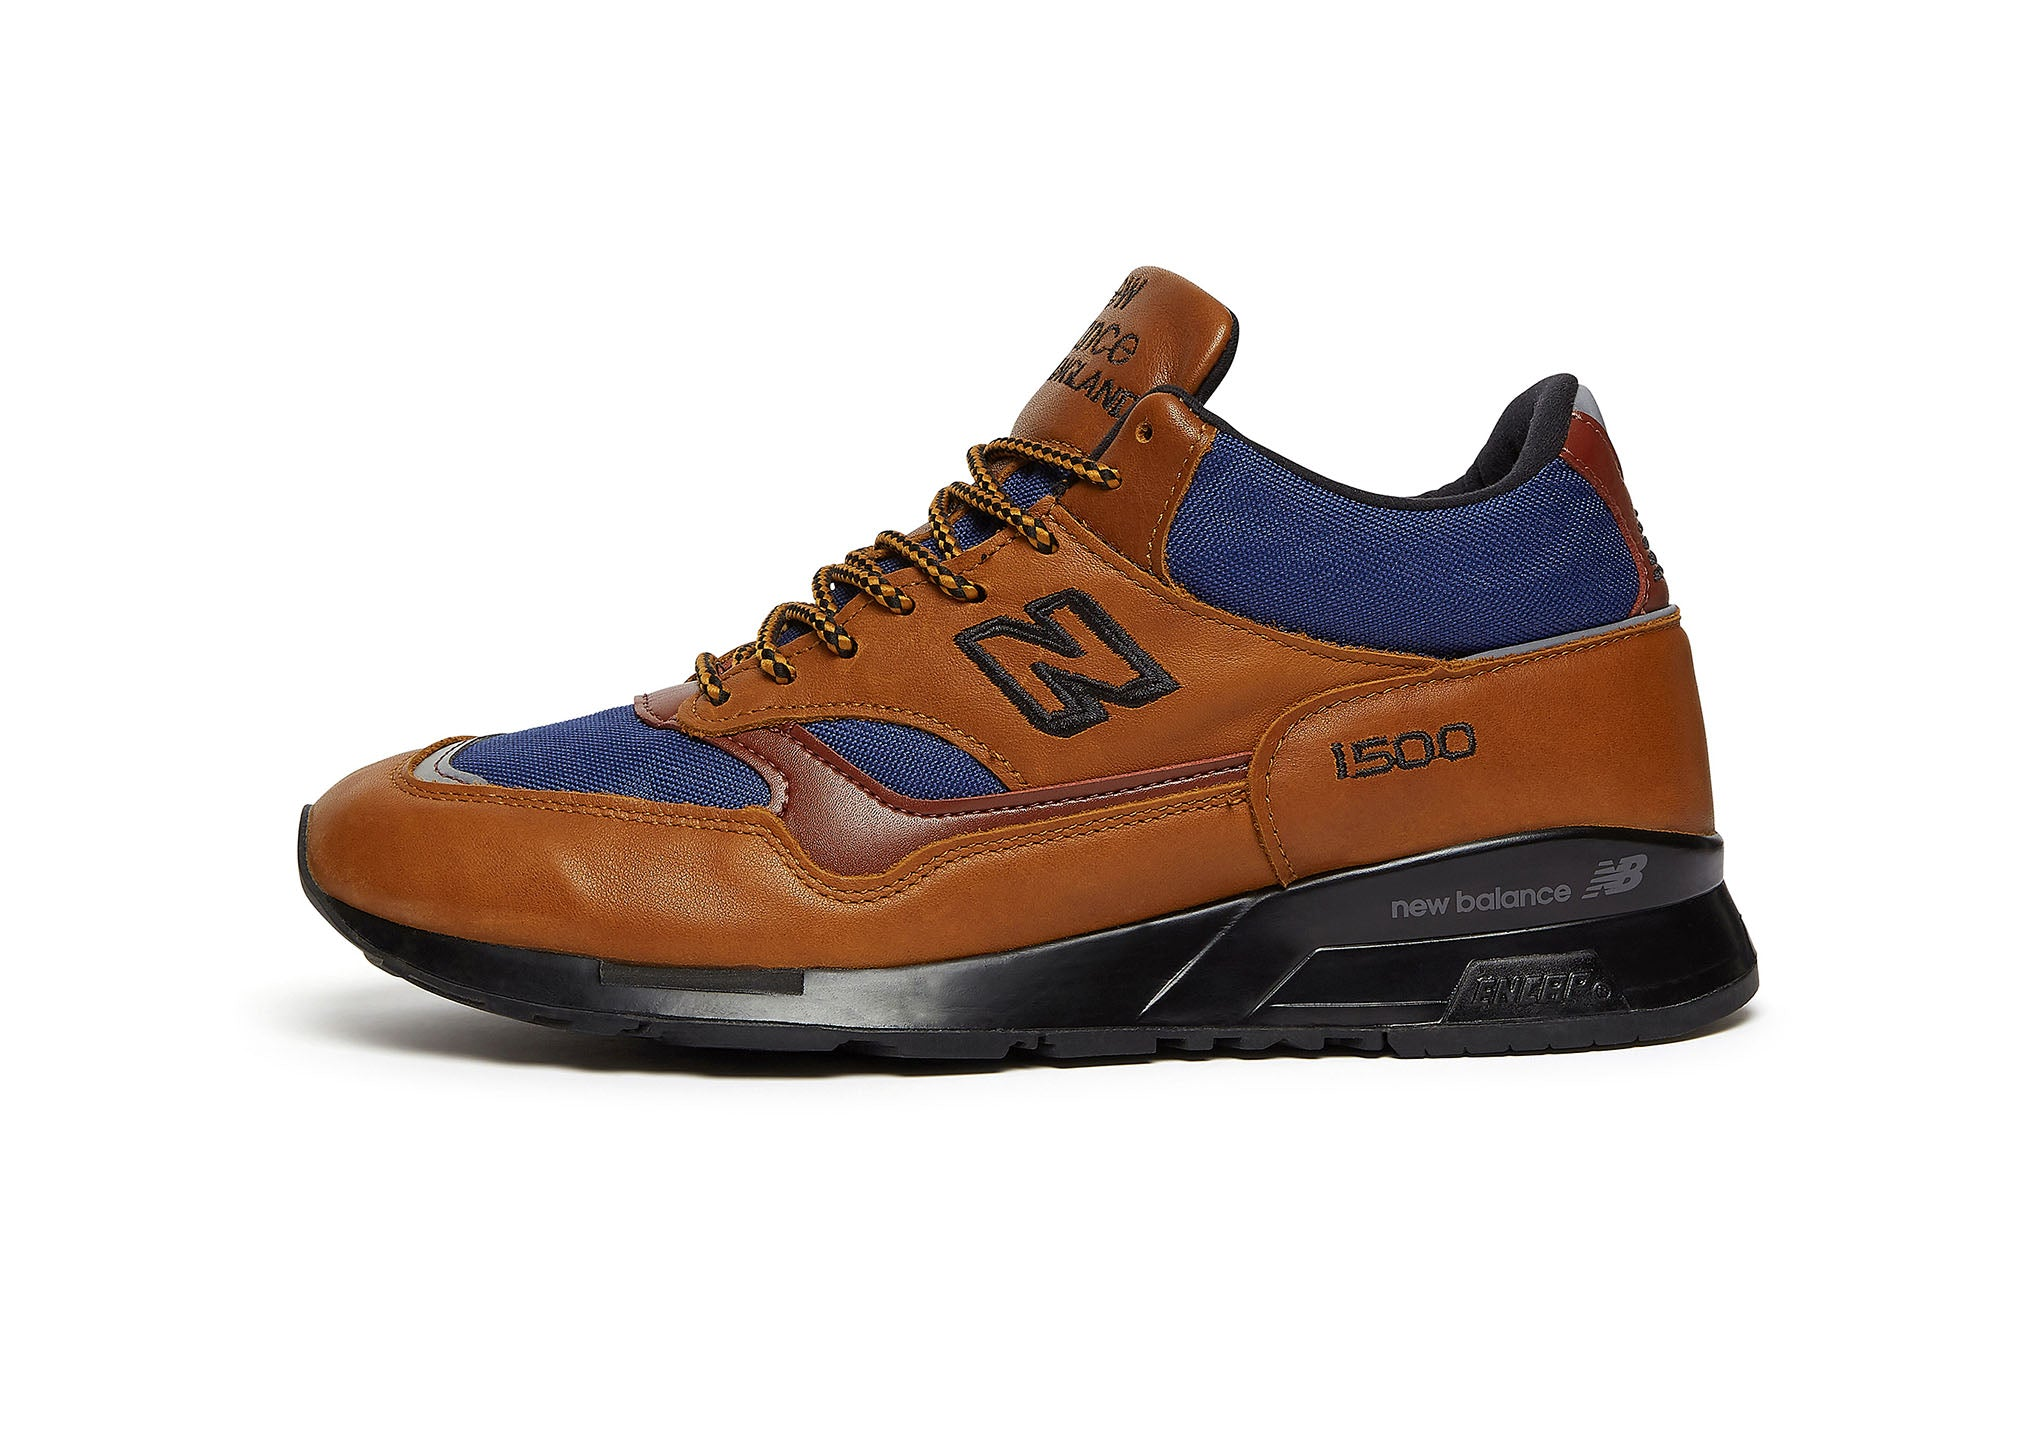 online store 2c41d 7b98f New Balance MH1500 in Tan/Navy | albam Clothing